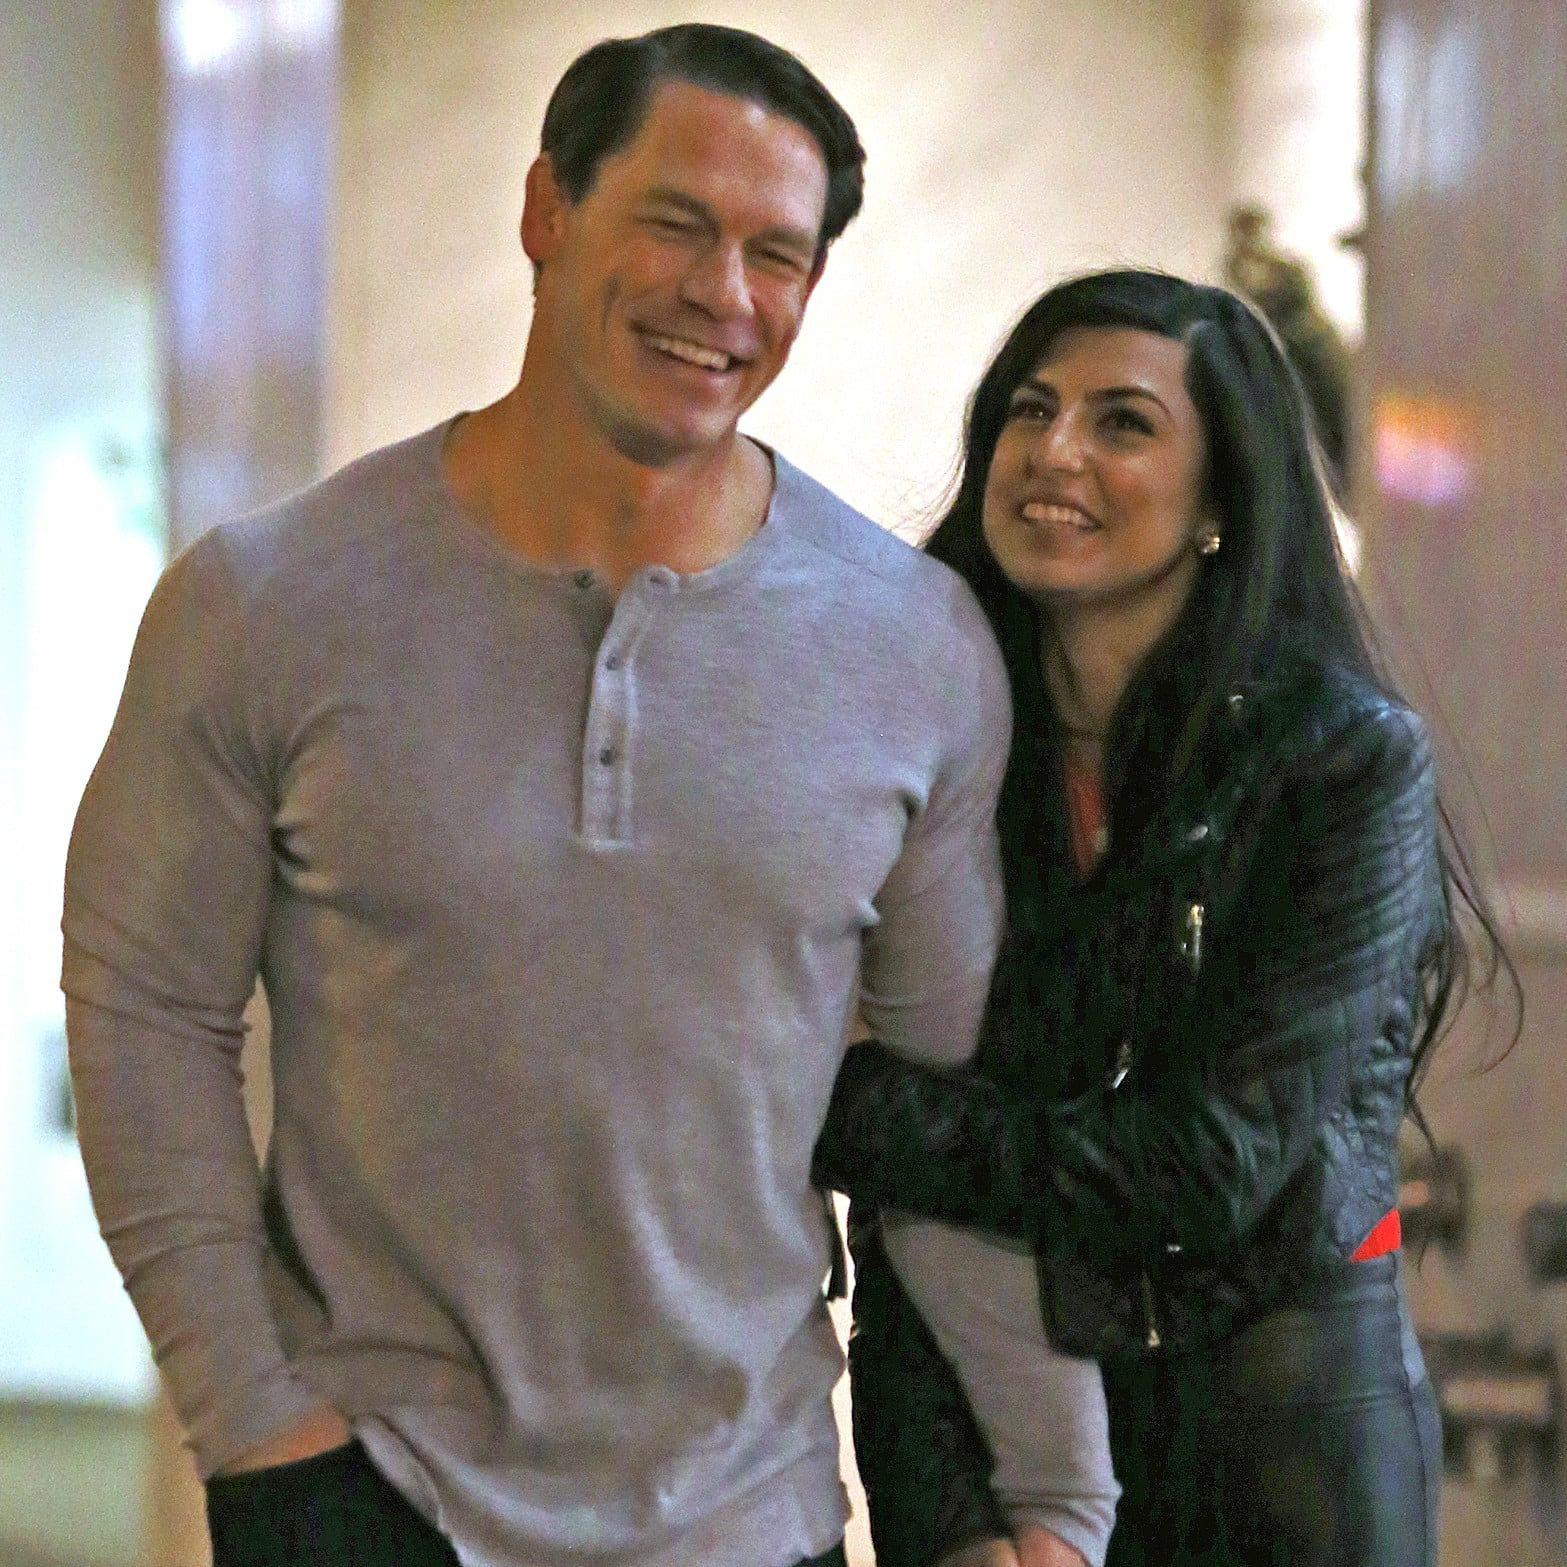 John Cena on Date in Canada After Nikki Bella Break Up 2019